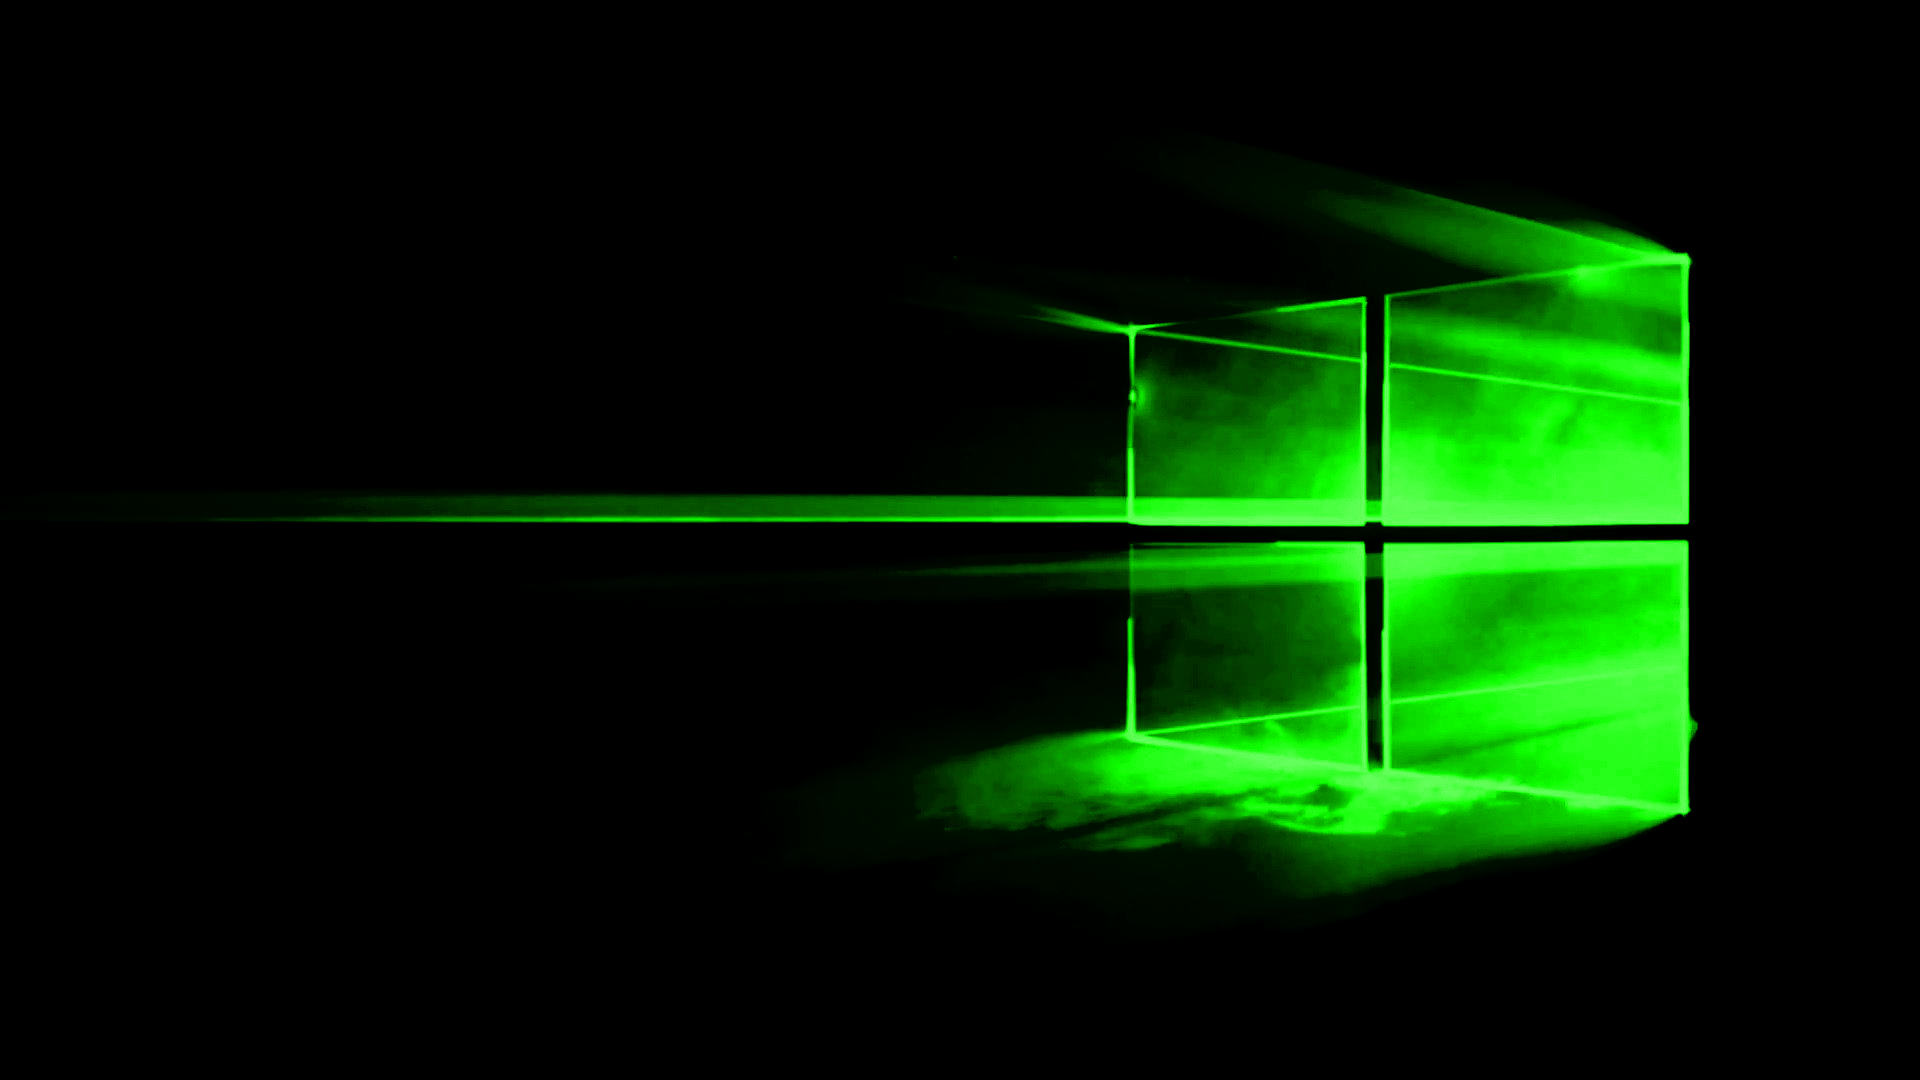 Cool Windows 10 Wallpapers